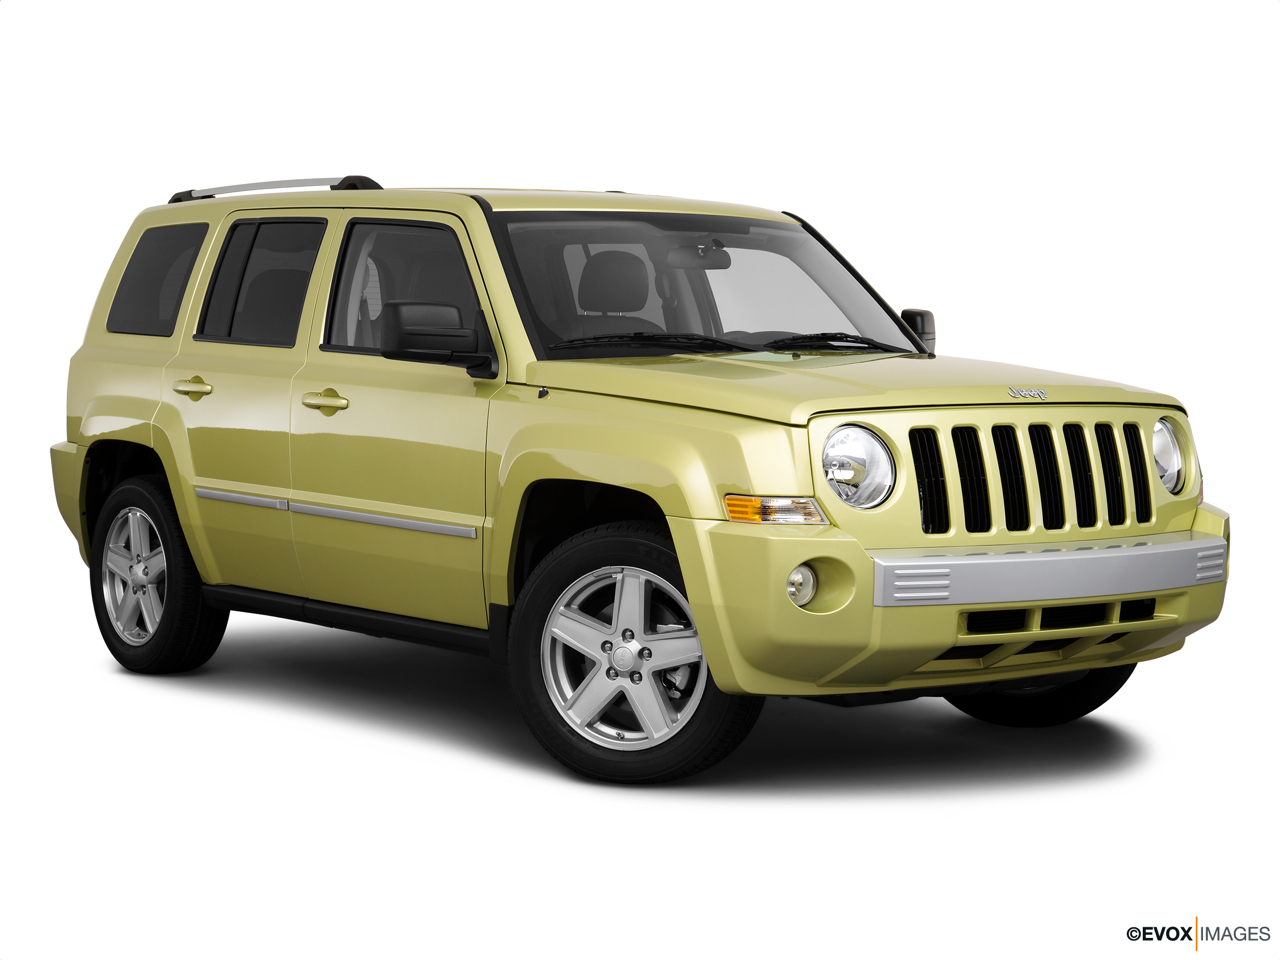 2010 Jeep Patriot Limited Front passenger 3/4 w/ wheels turned.